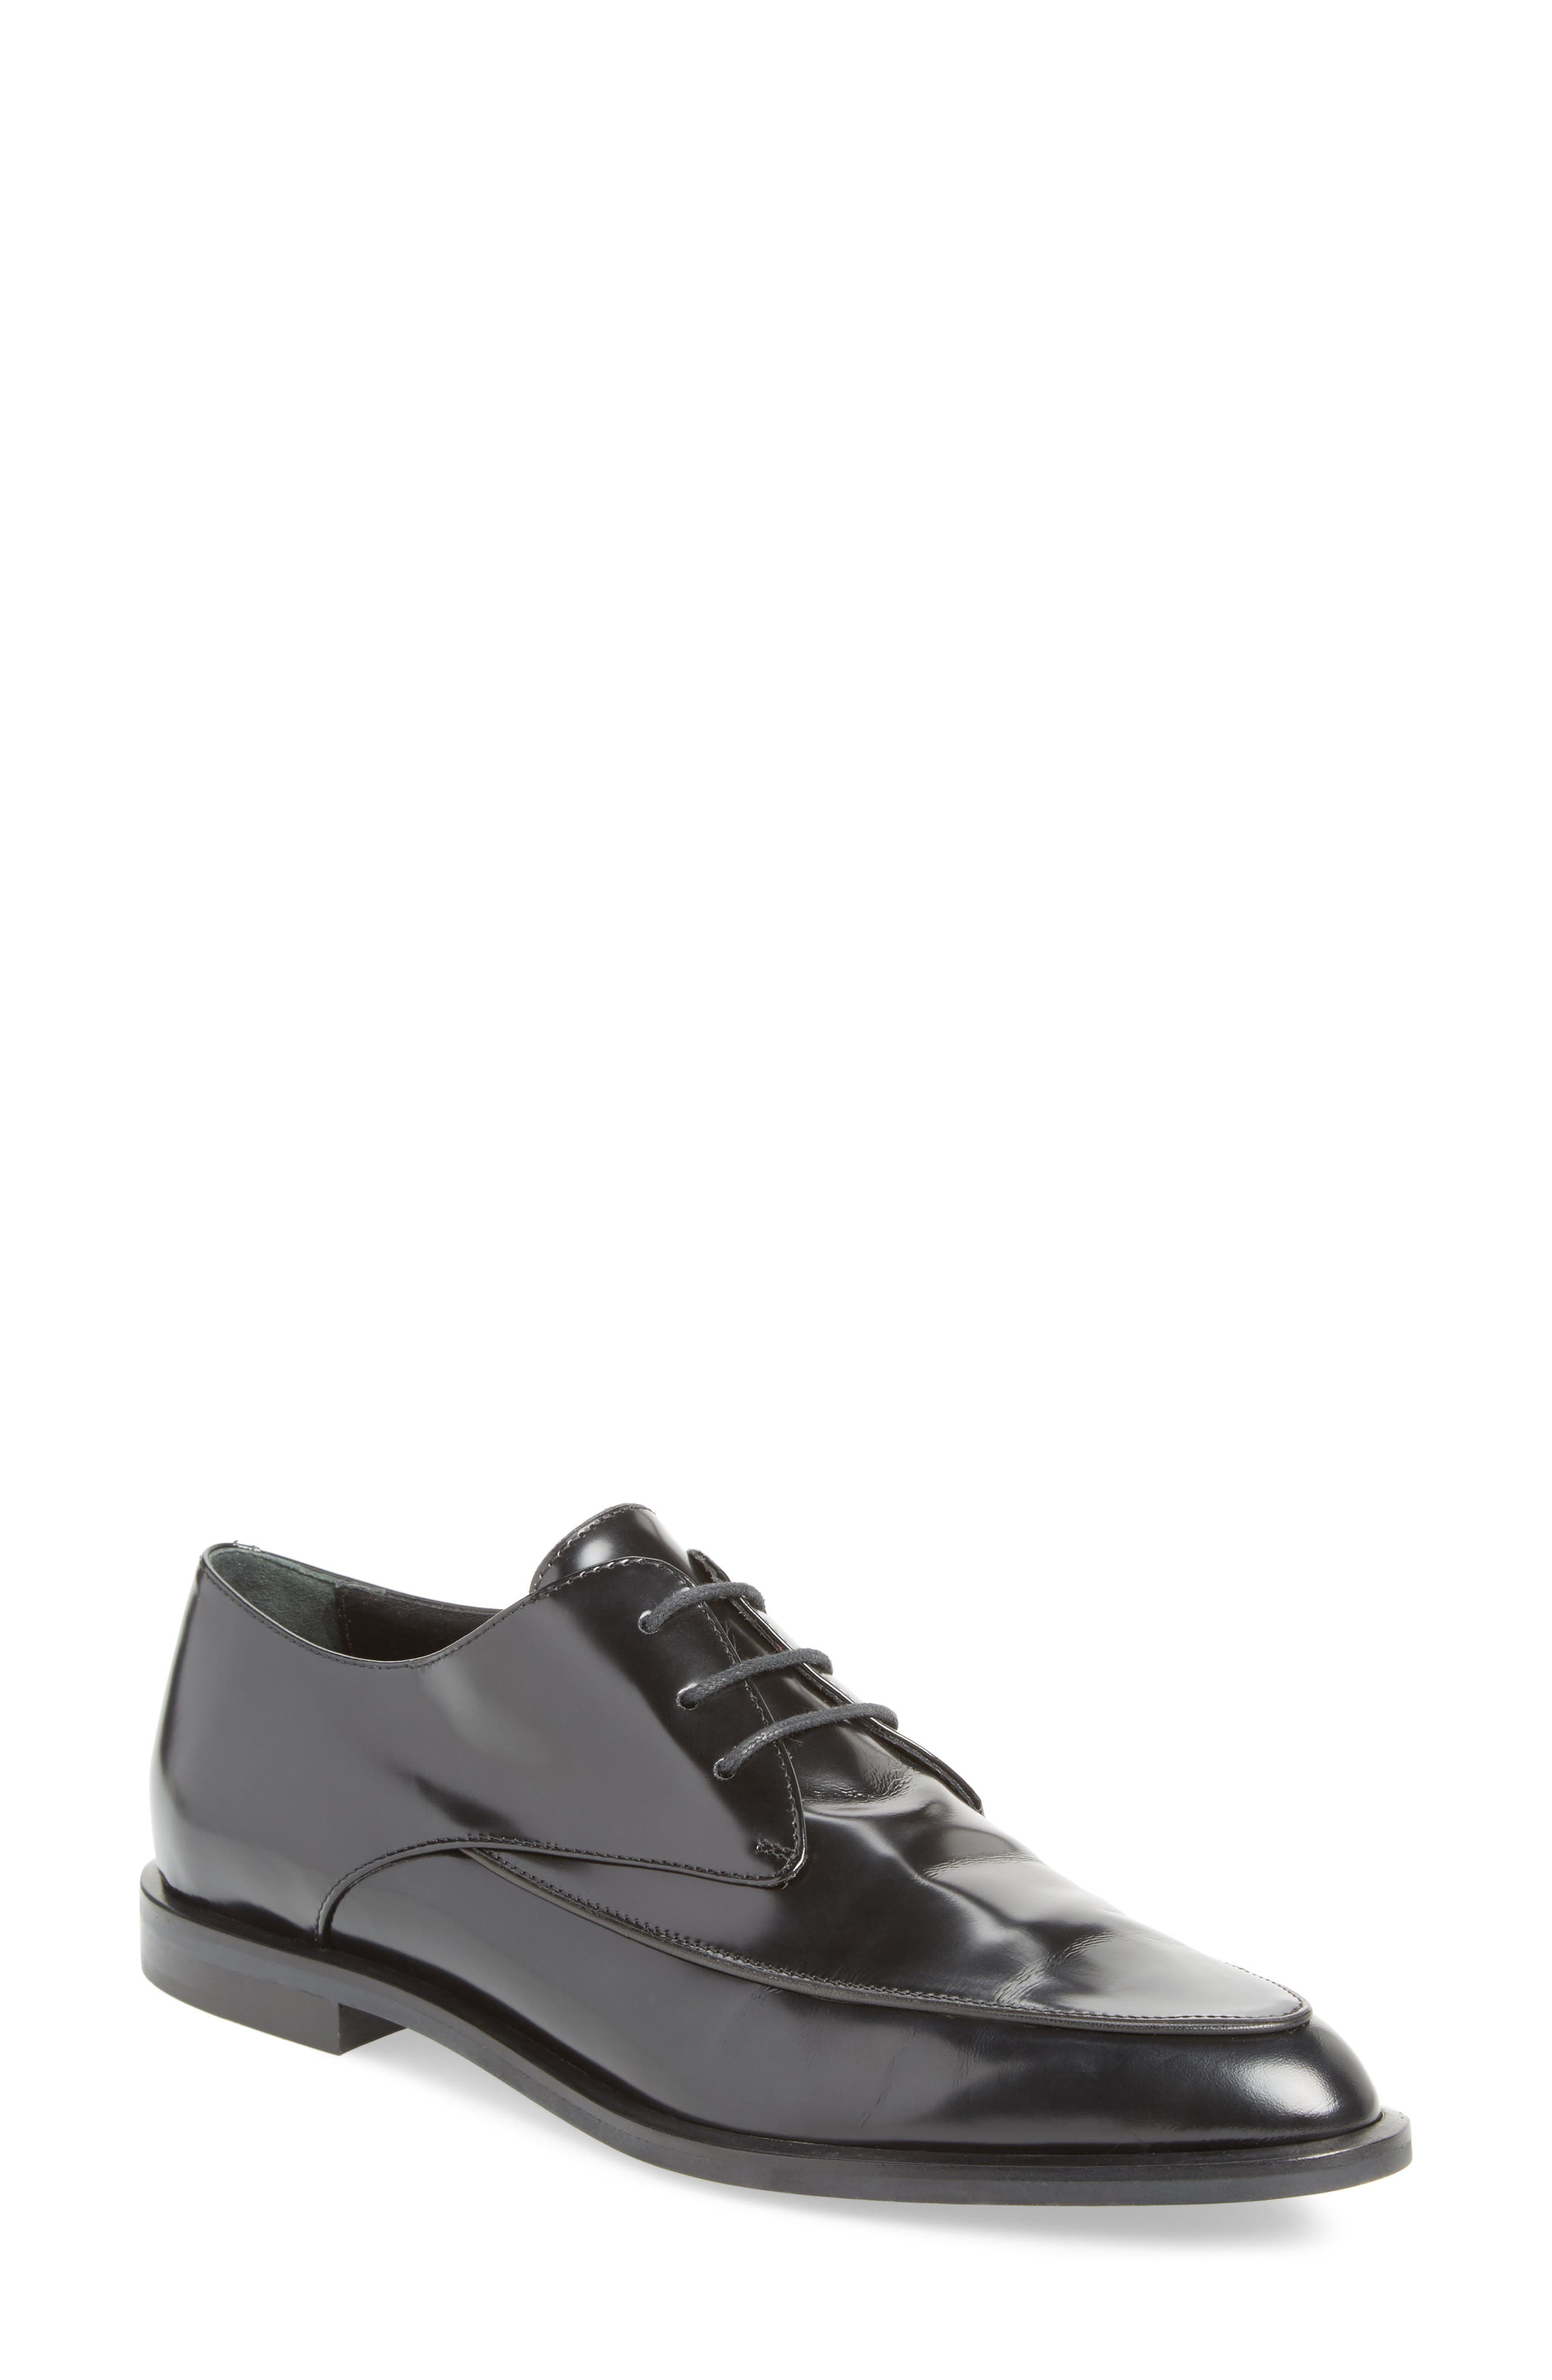 Alternate Image 1 Selected - Tod's Pointy Toe Oxford (Women)